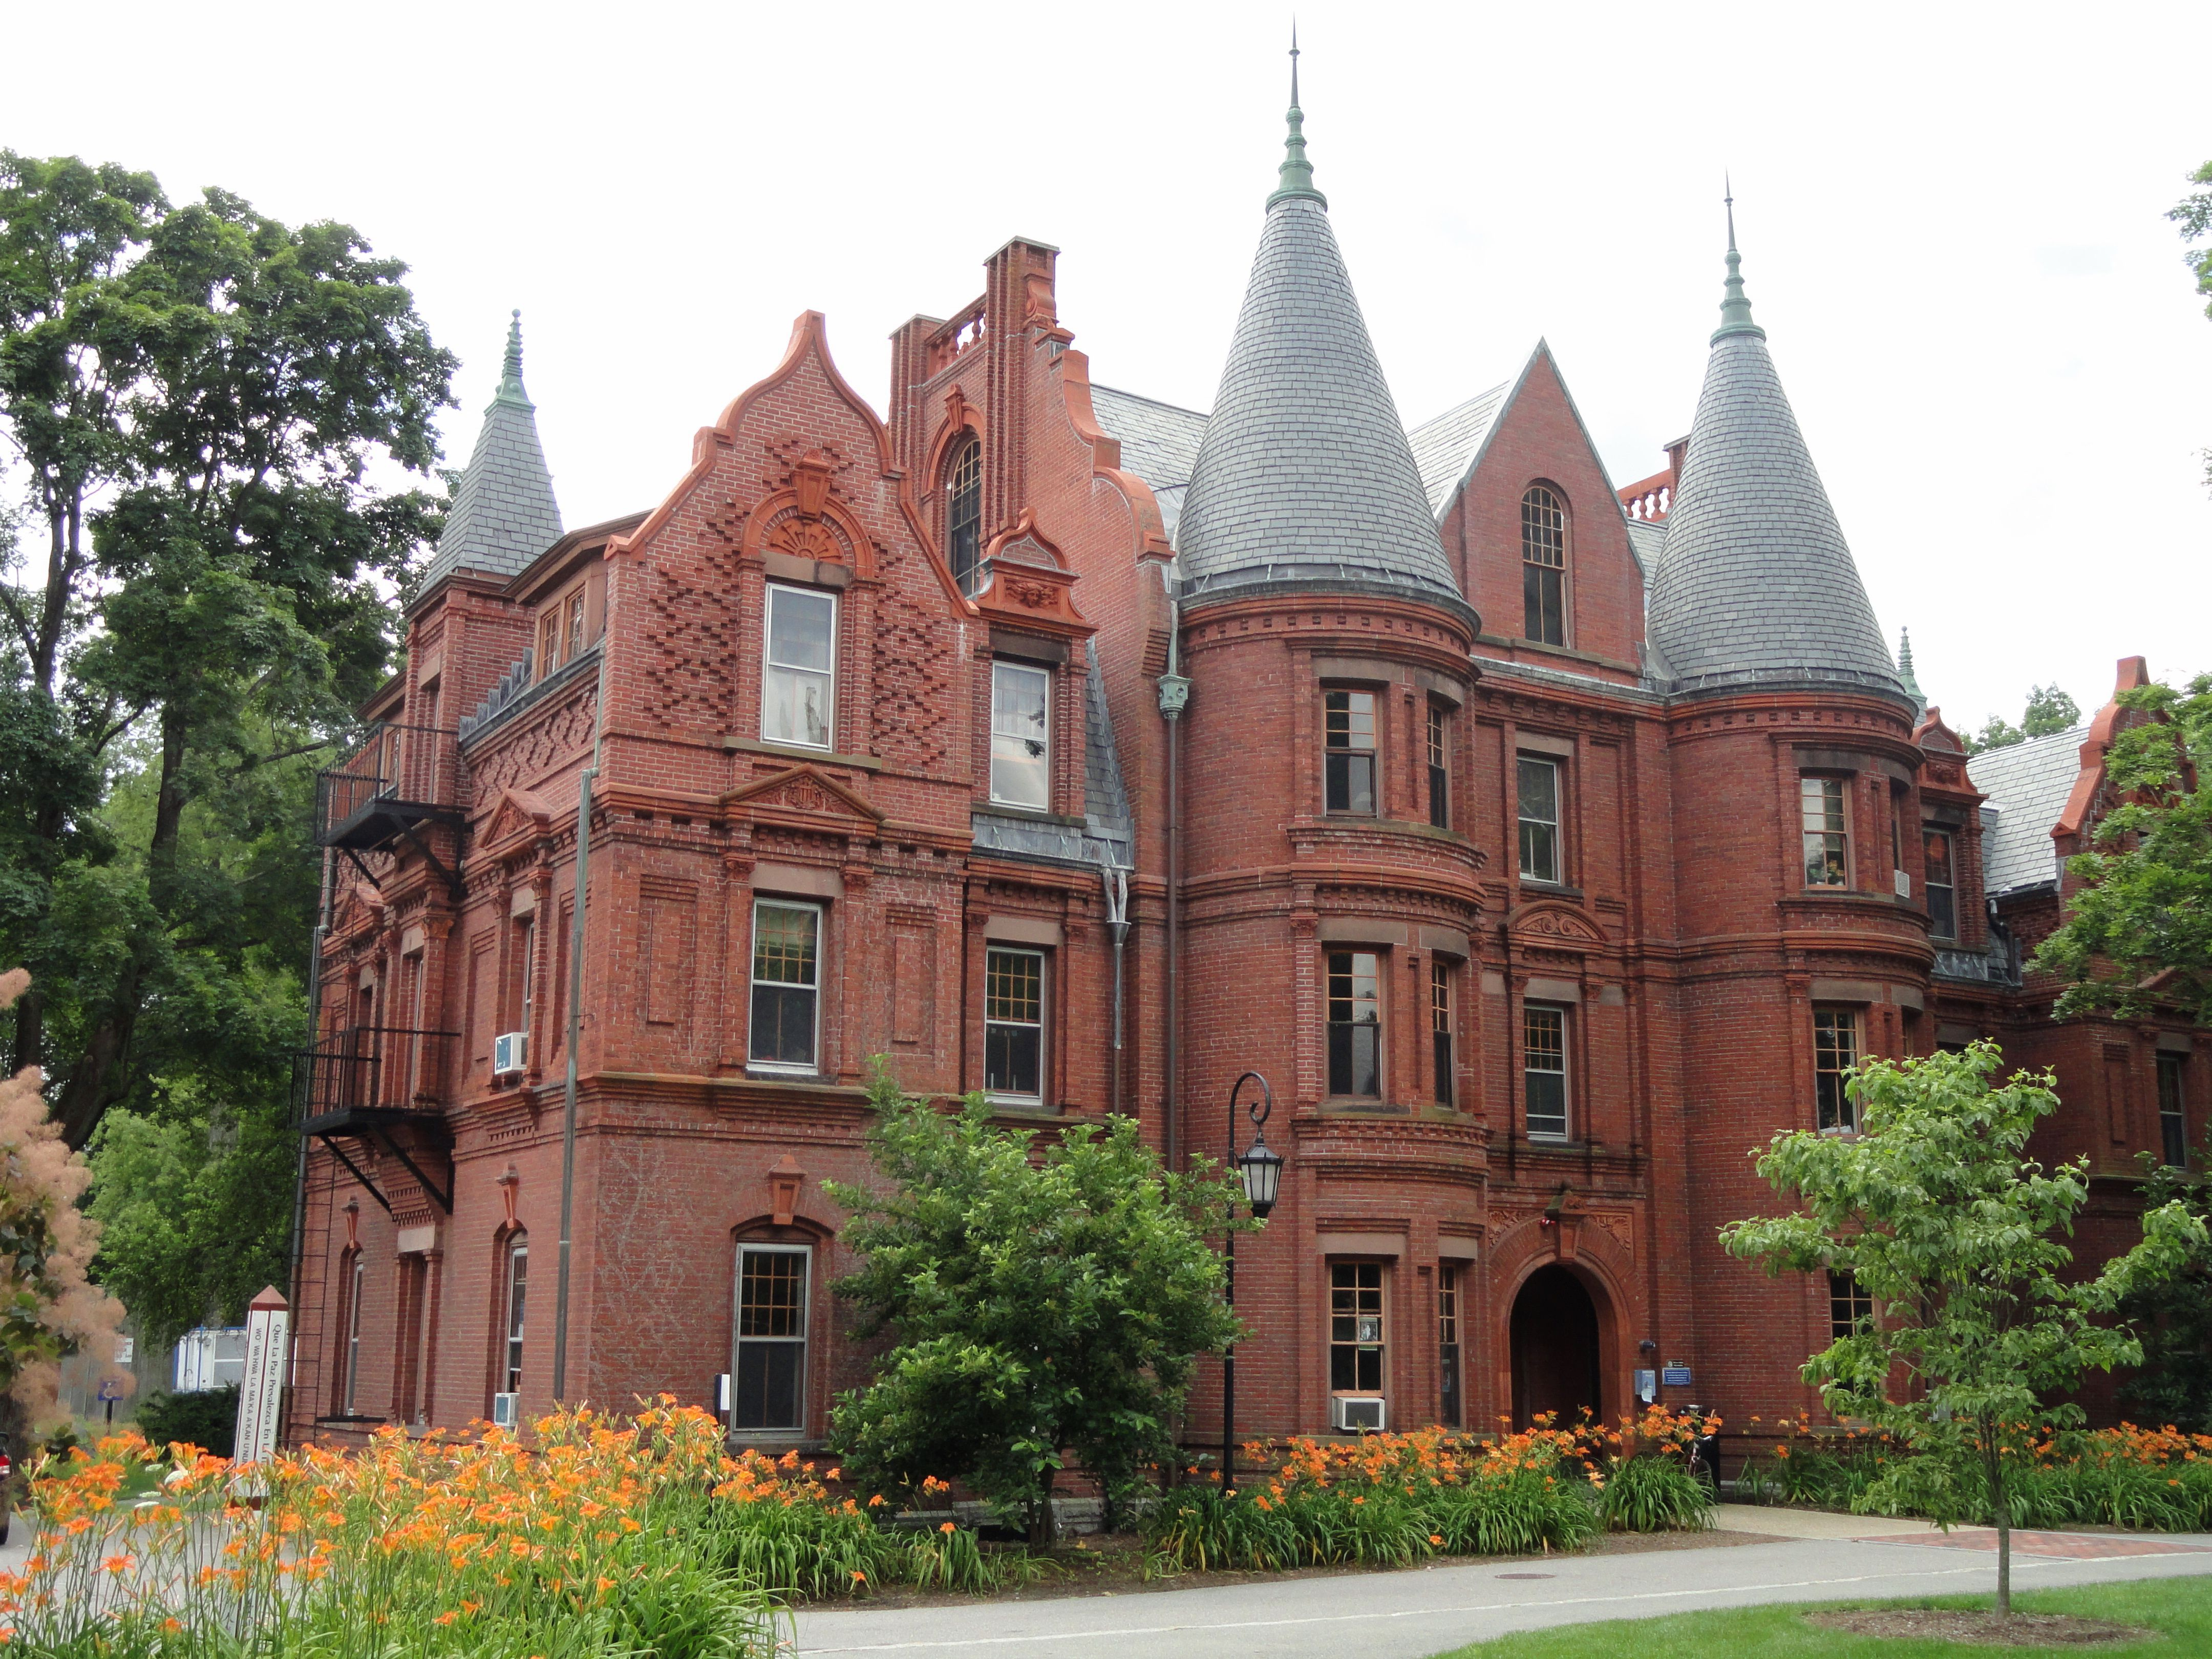 The Top 25 New England Colleges and Universities